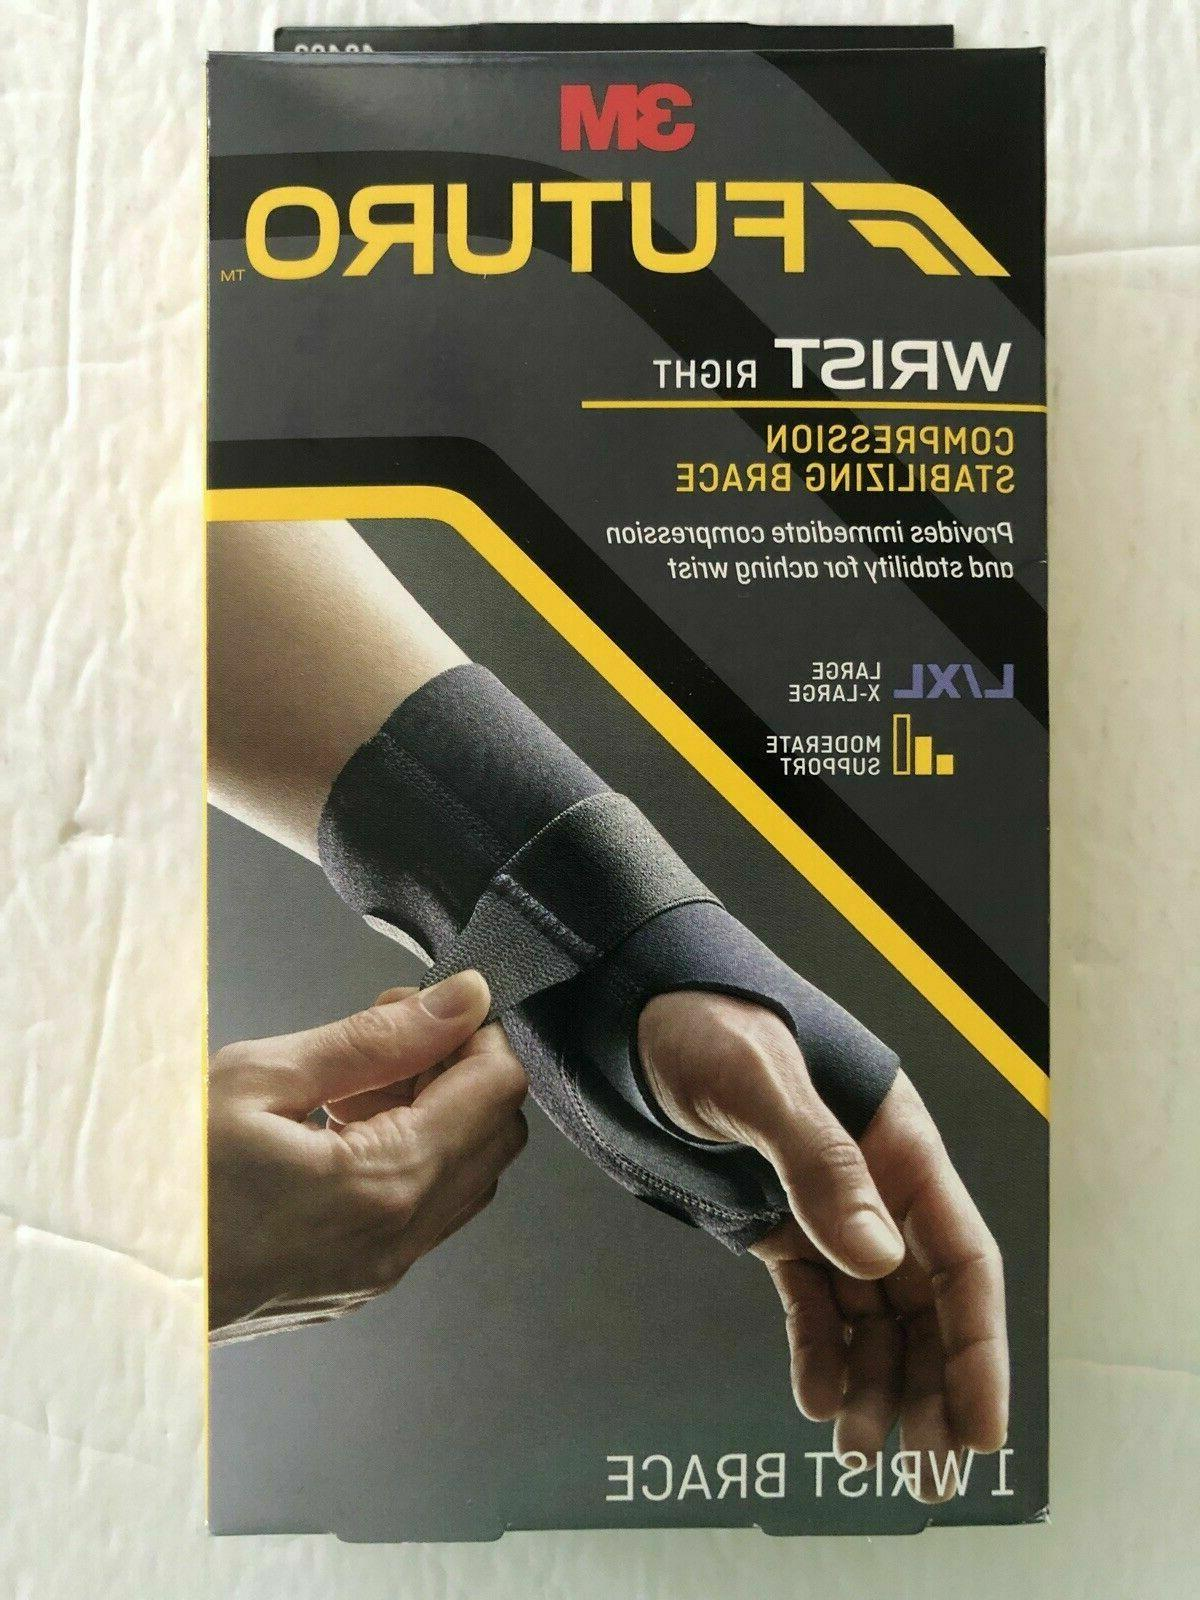 3m wrist right compression stabilizing brace large